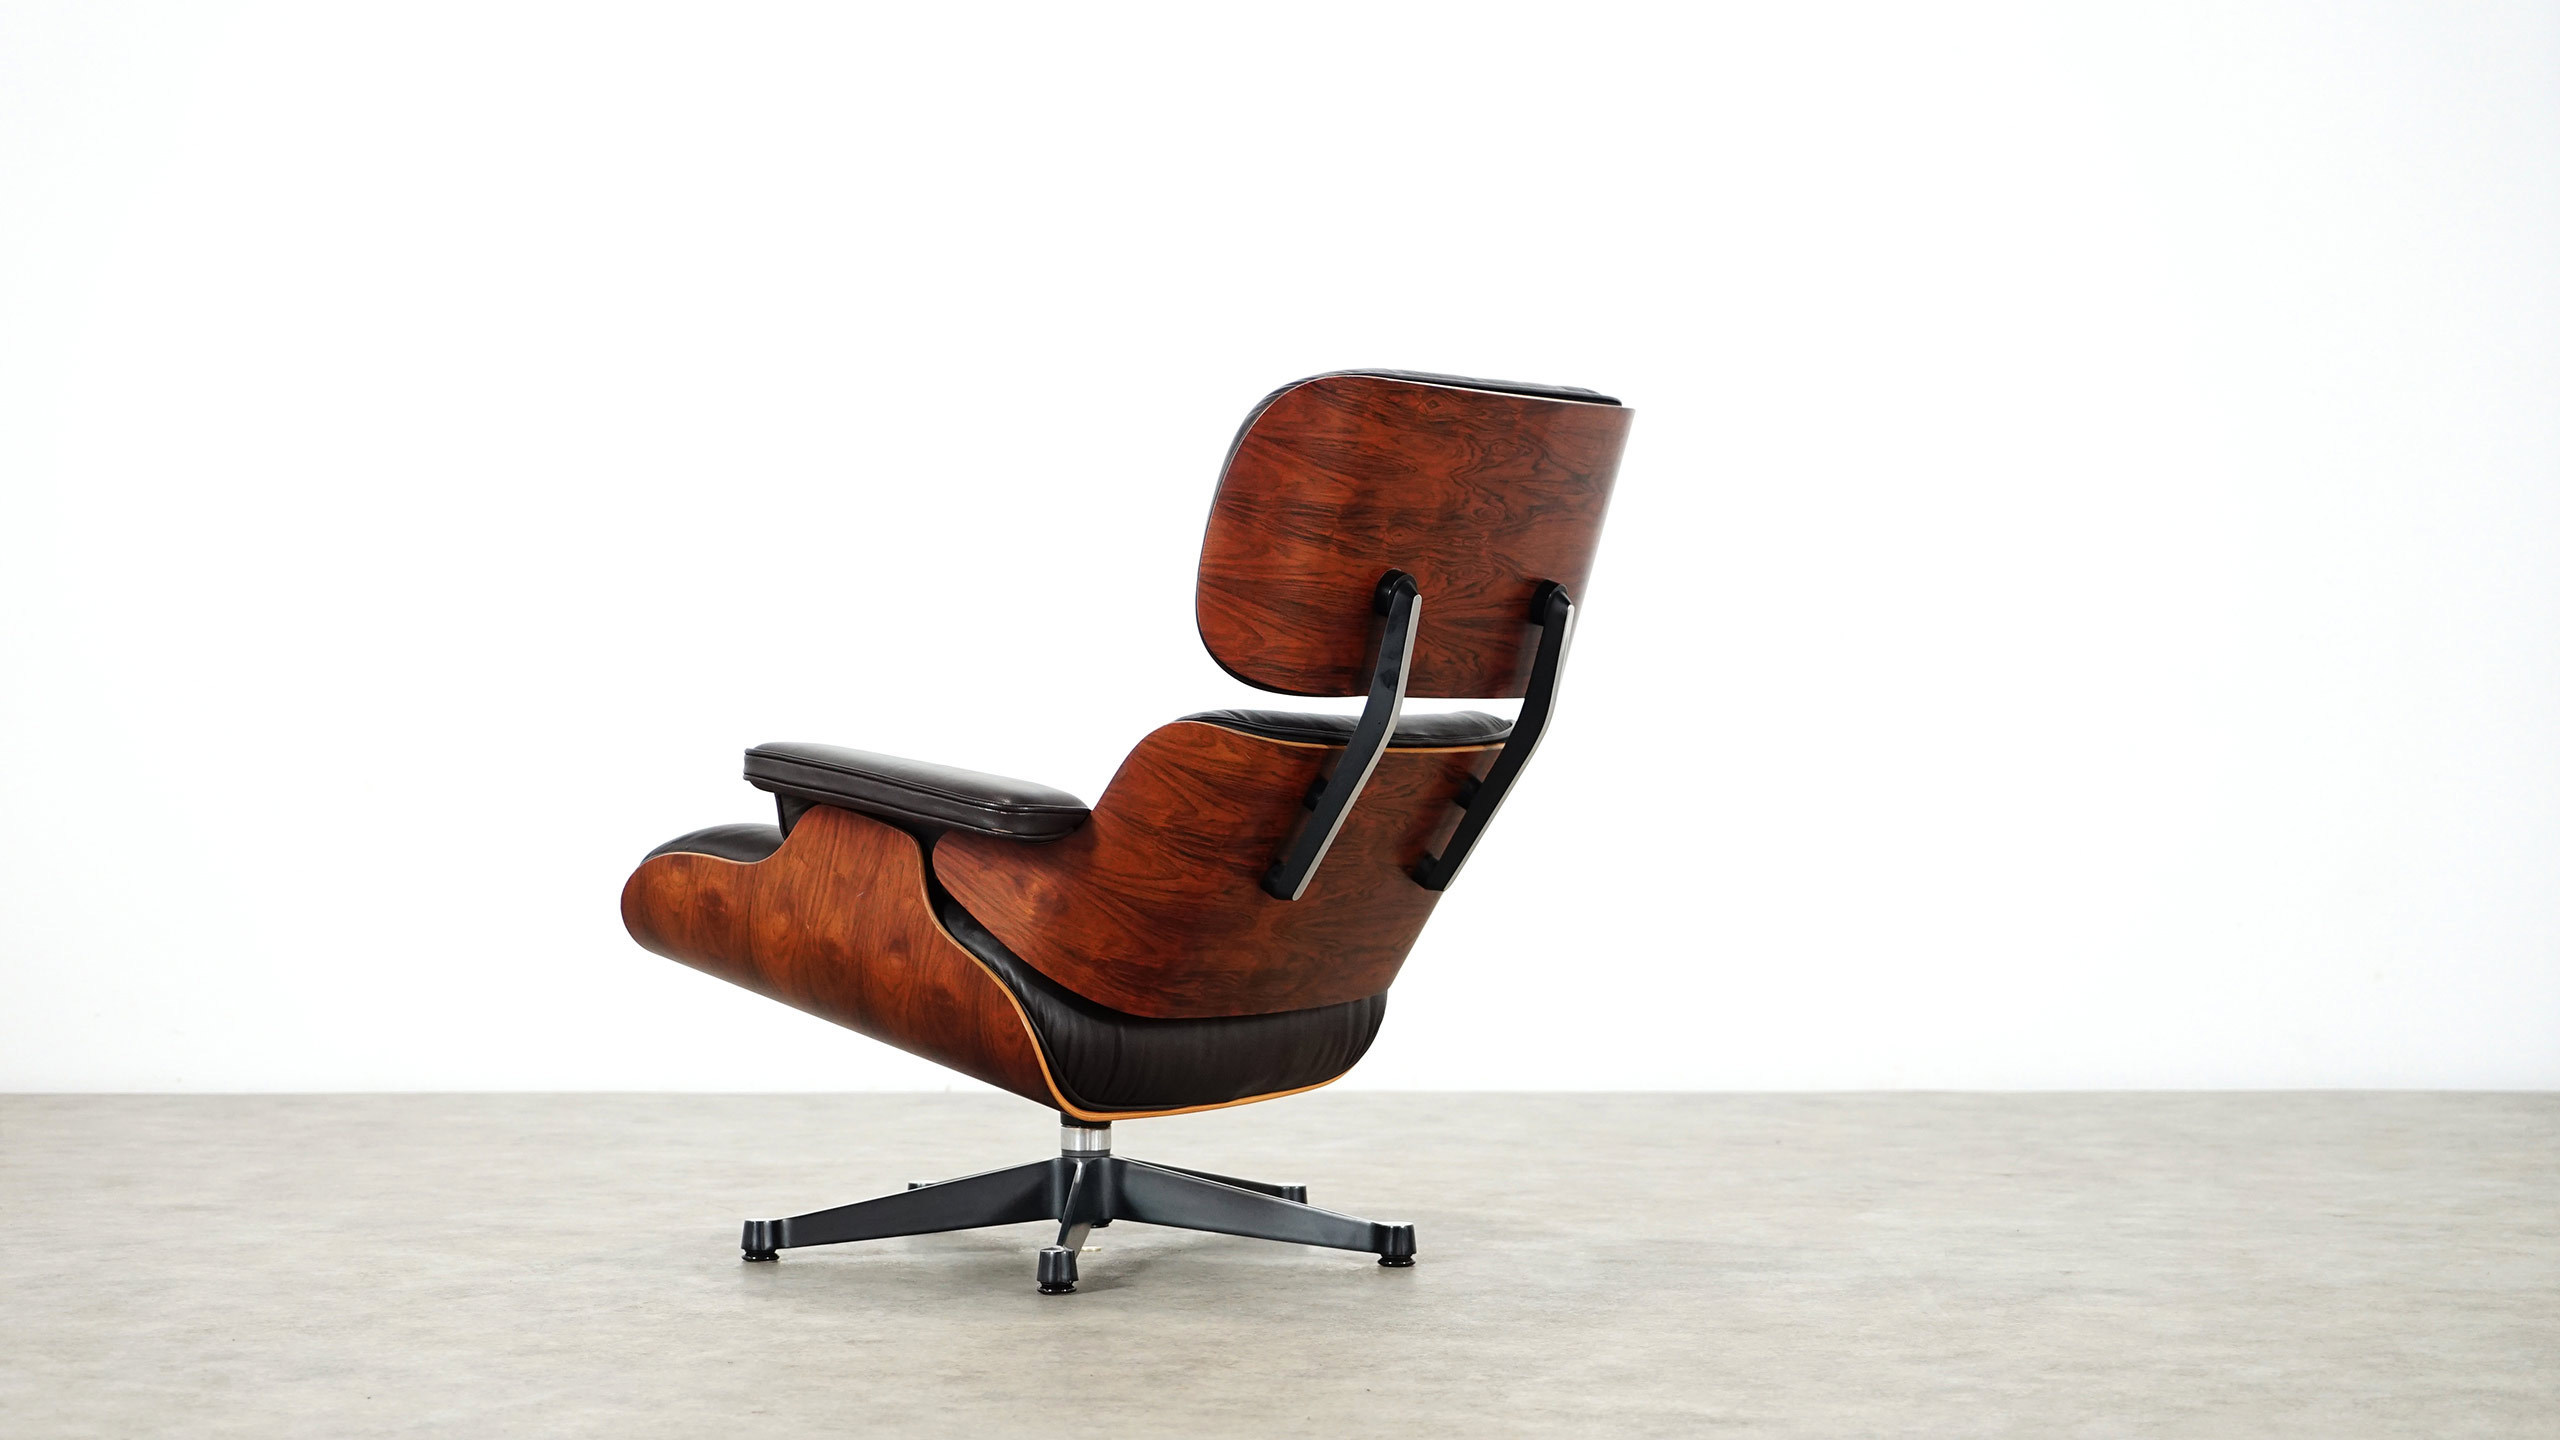 charles eames lounge chair by herman miller vitra. Black Bedroom Furniture Sets. Home Design Ideas